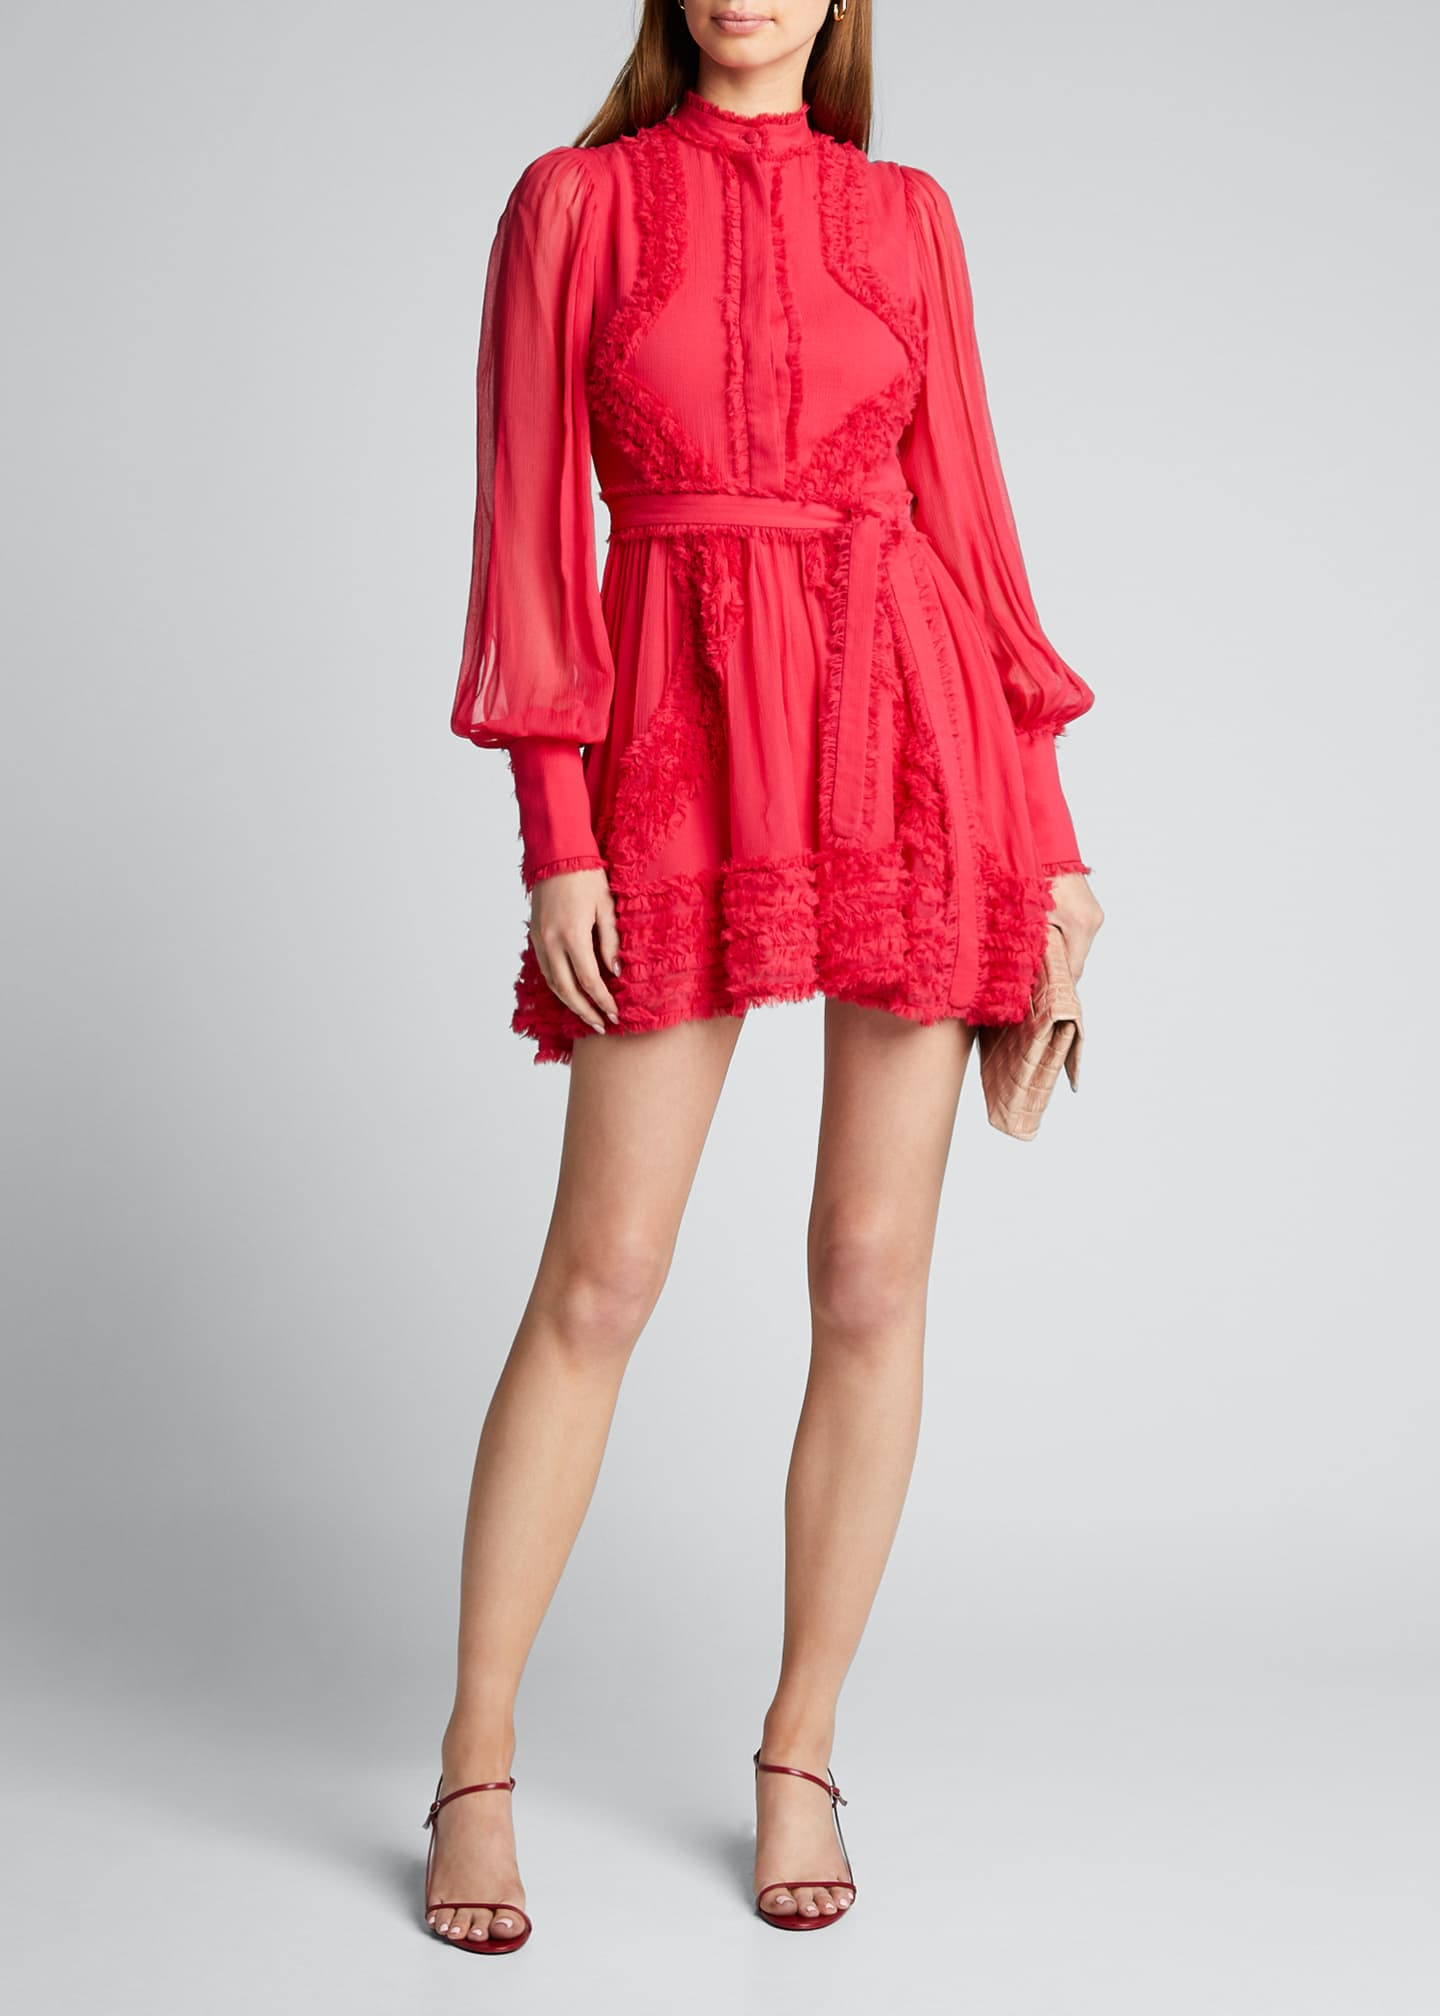 Alexis Olinka Long-Sleeve Ruffle Dress